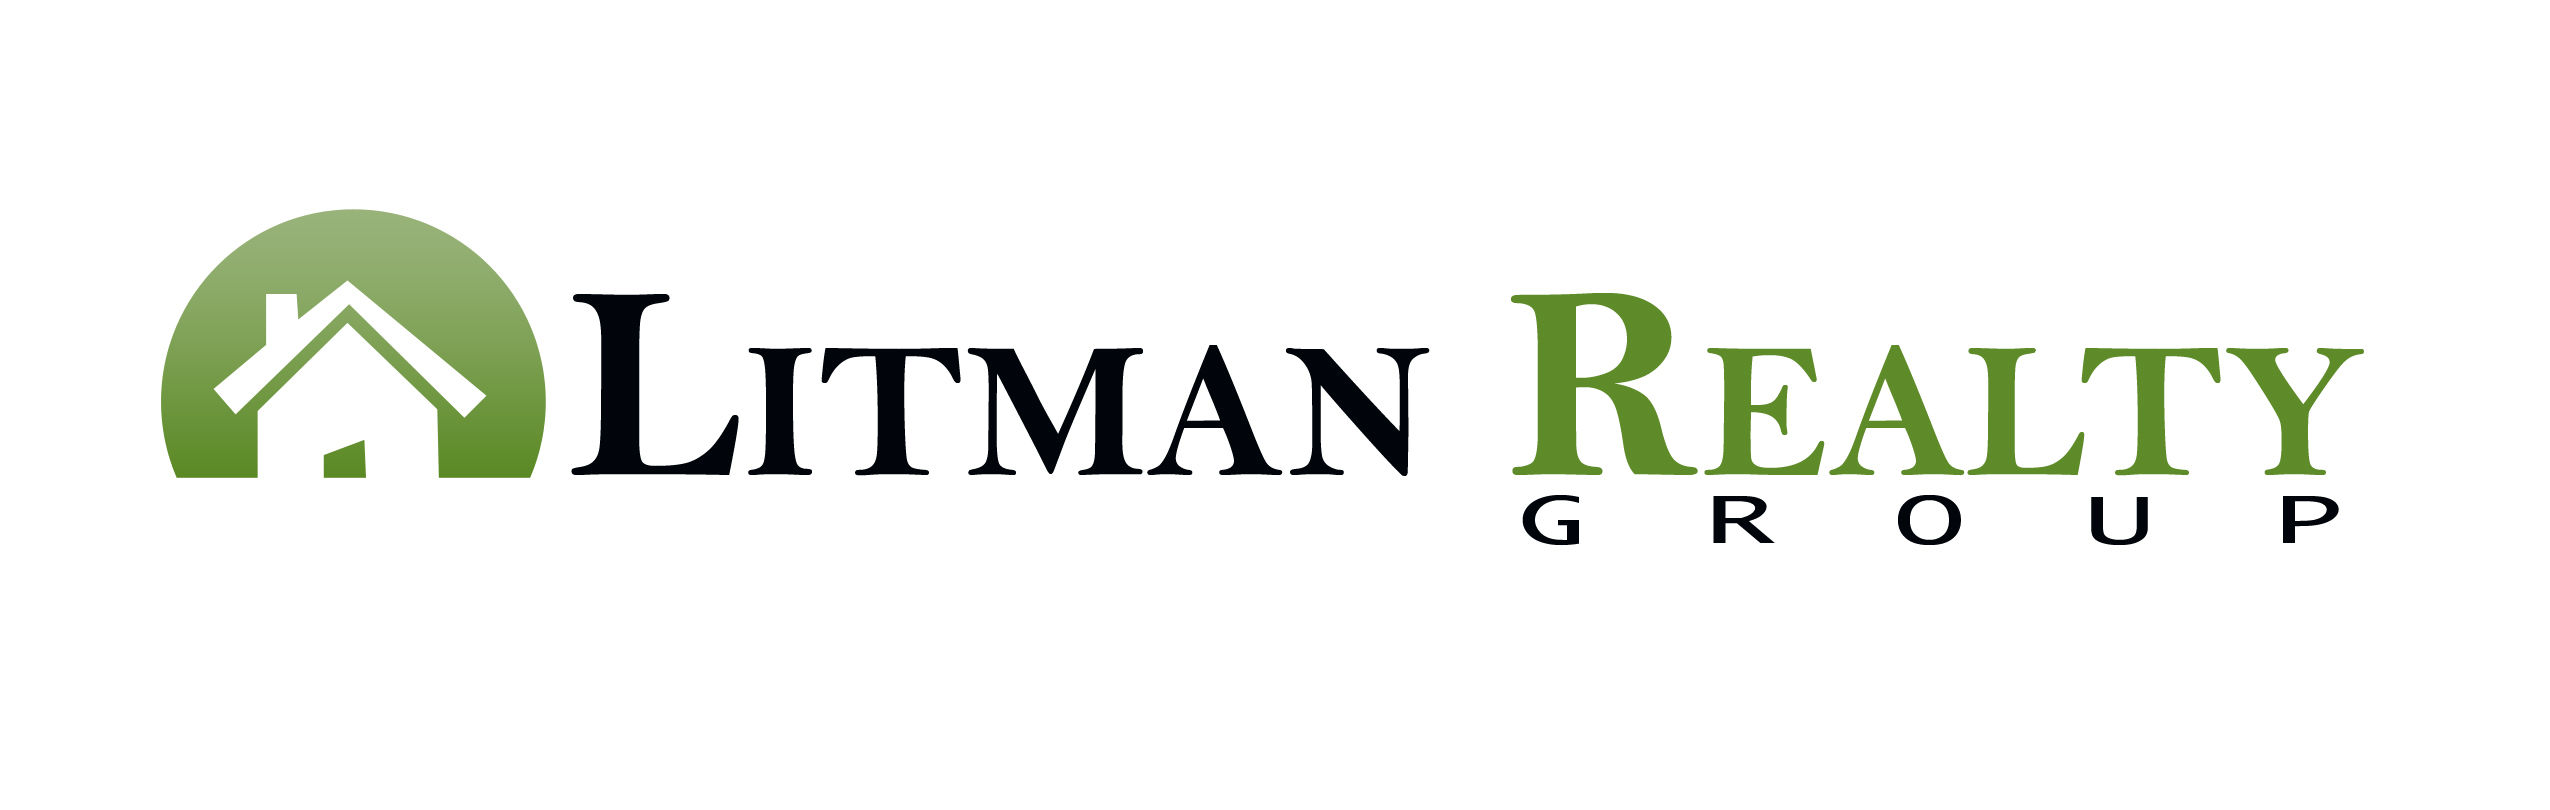 LITMAN REALTY GROUP